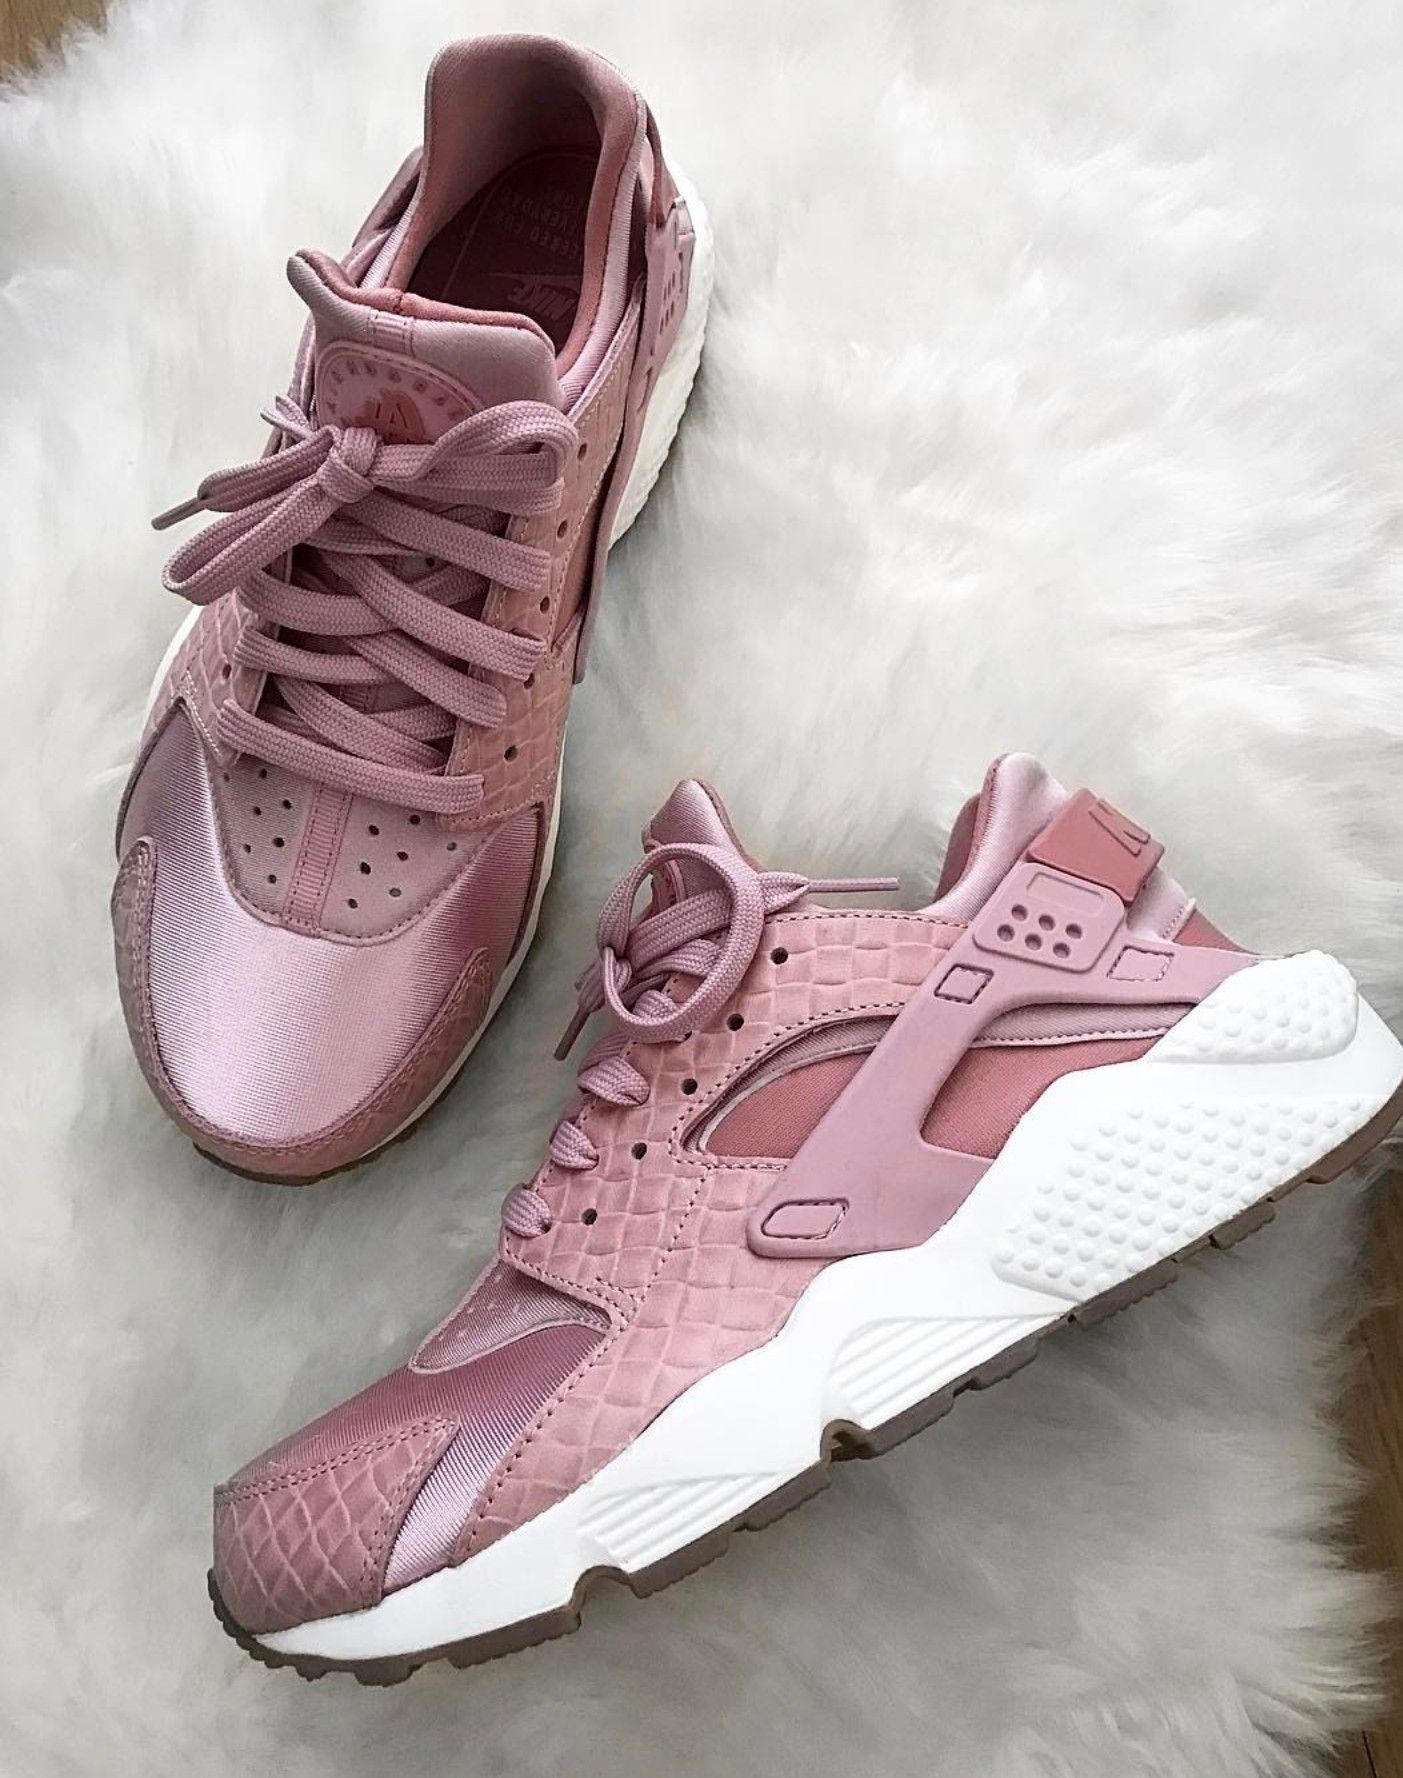 best service 90574 b4009 Nike Huarache in rosa Foto fashionthingsbylisa Instagram